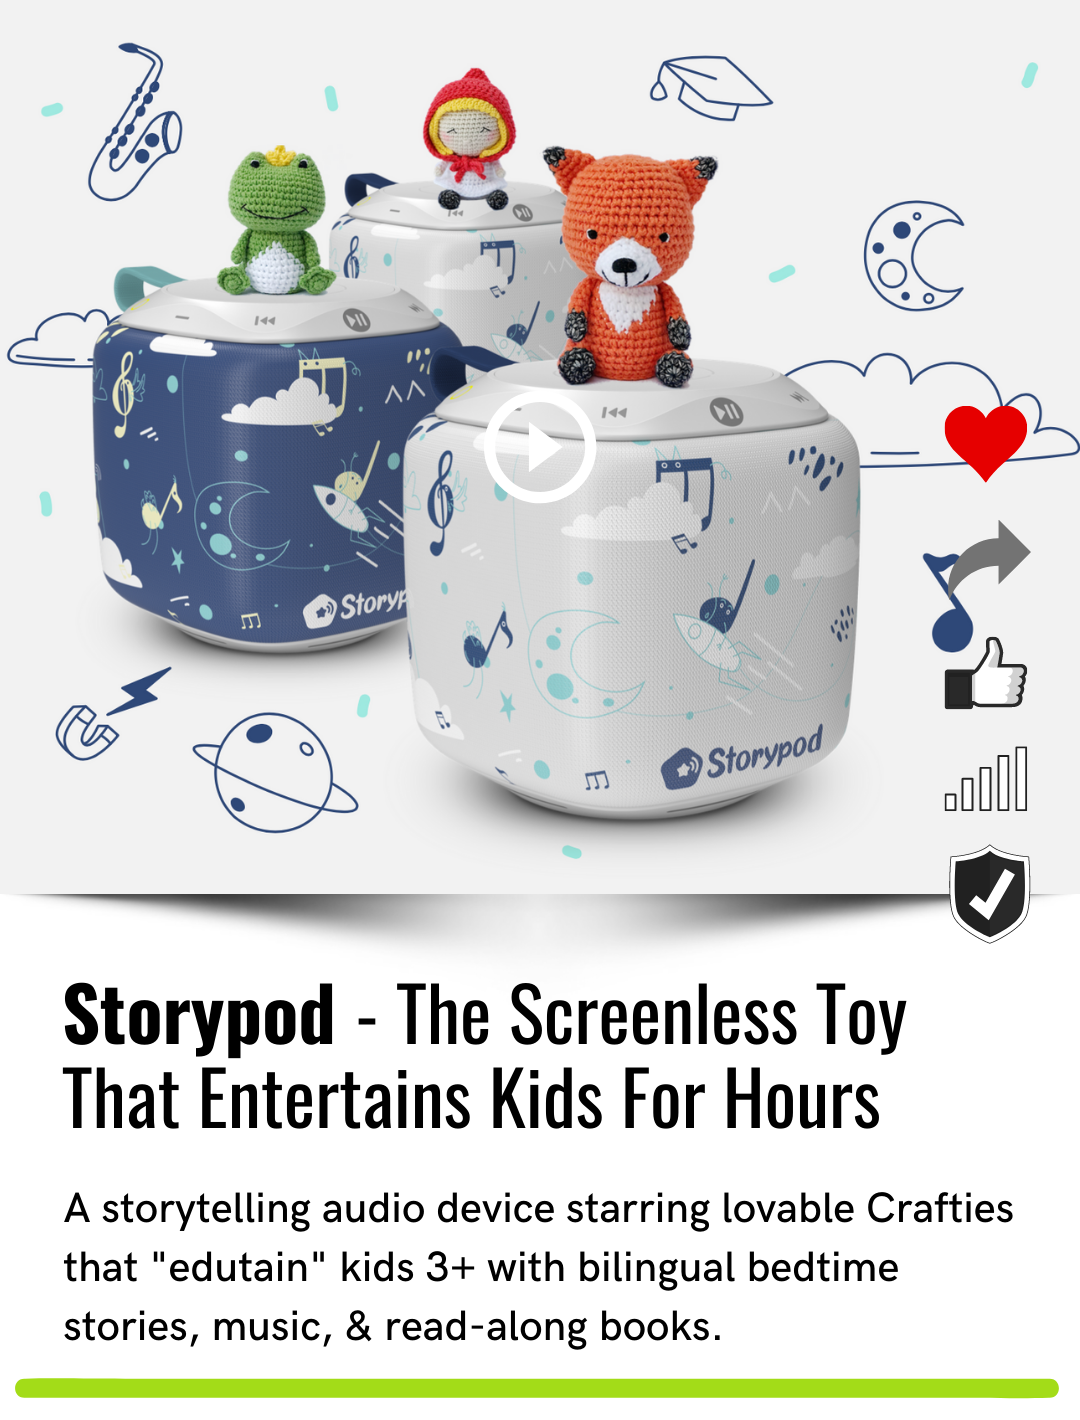 Storypod - The Screenless Toy That Entertains Kids For Hours